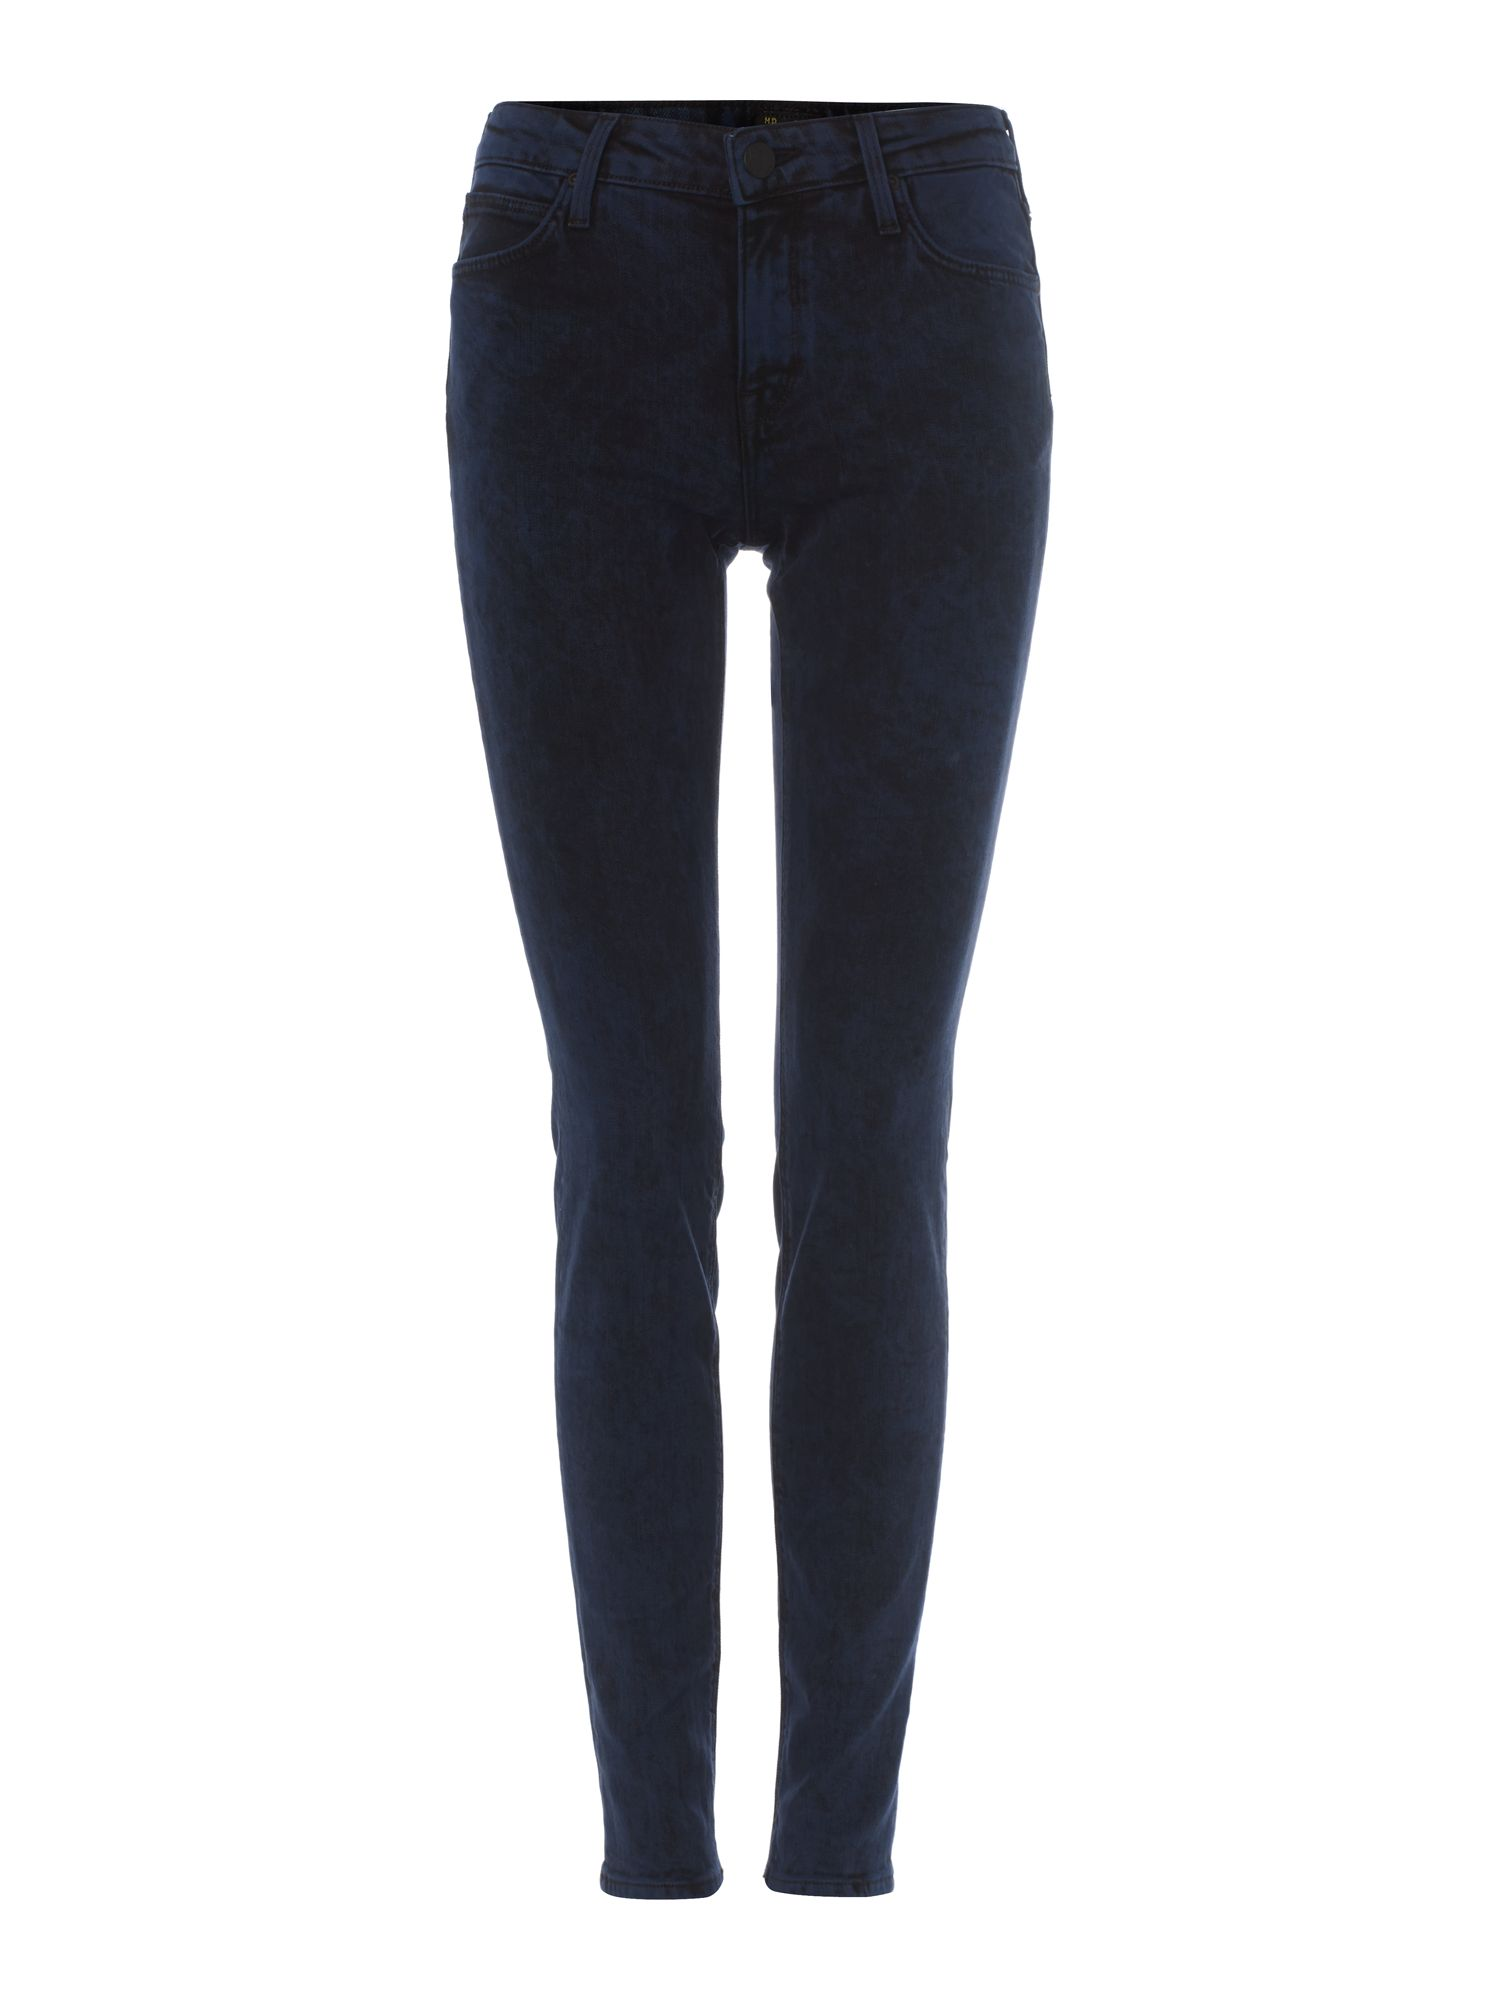 The Scarlett Skinny in Shock Blue